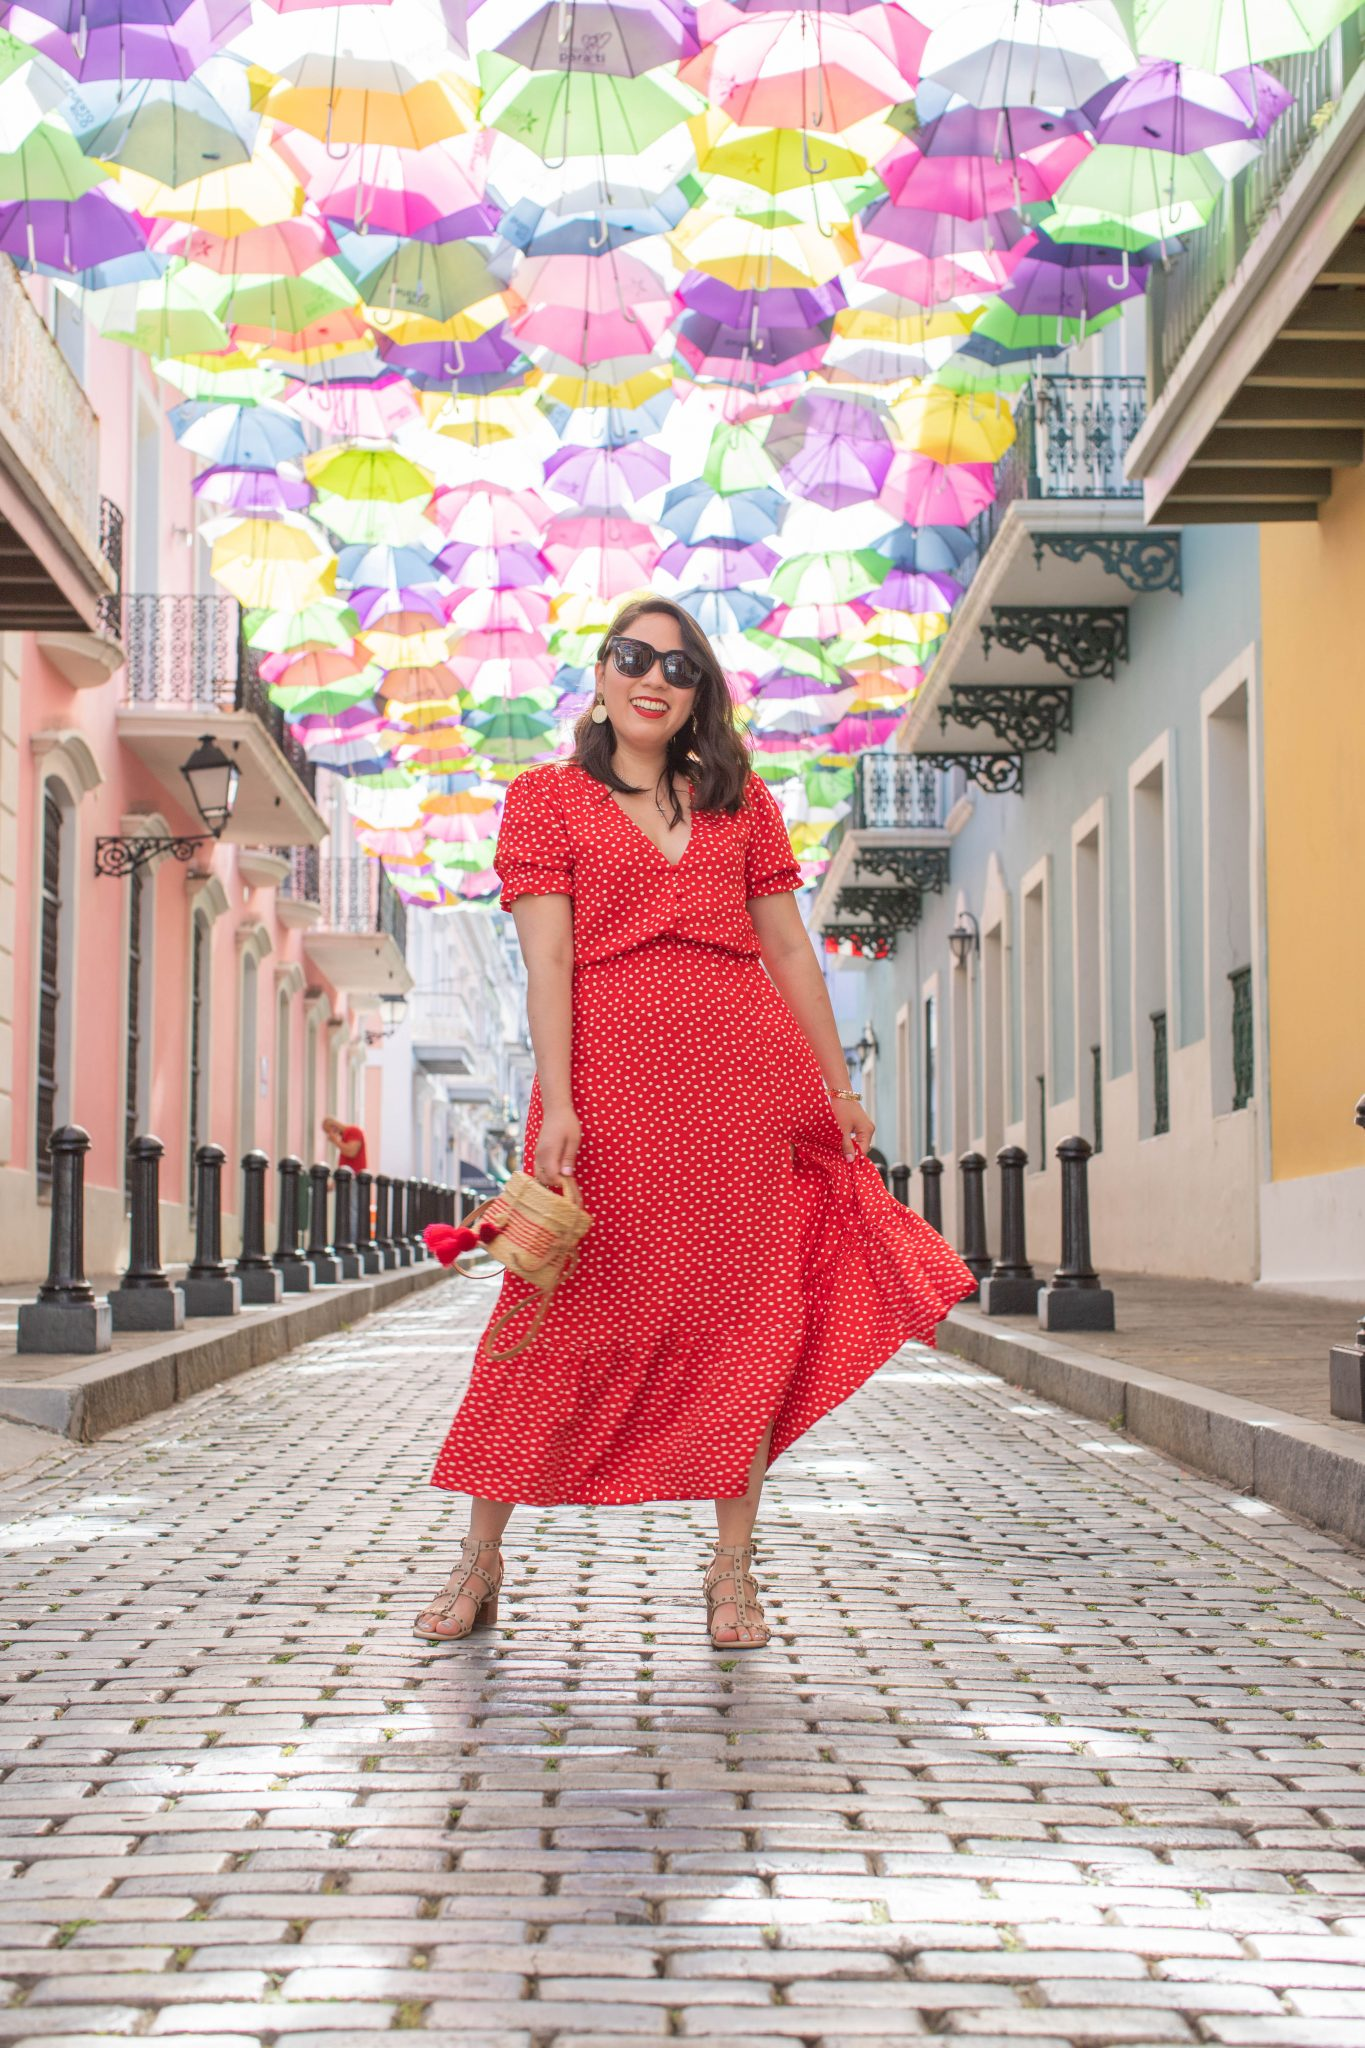 My New Outlook on Instagram... And no, I'm Not Complaining About The Instagram Algorithm by popular US influencer Live, Laugh, Linda: image of a woman standing on a cobble stone street with umbrellas hanging overhead In Puerto Rico and wearing a red Zara POLKA DOT DRESS WITH RUFFLE, Sole Society nude colored sandals with studs, Asos South Beach woven straw earrings, Shopbop Nannacay Baby Roge Pom Pom Bag, and Gentle Monster SALT 01 sunglasses.